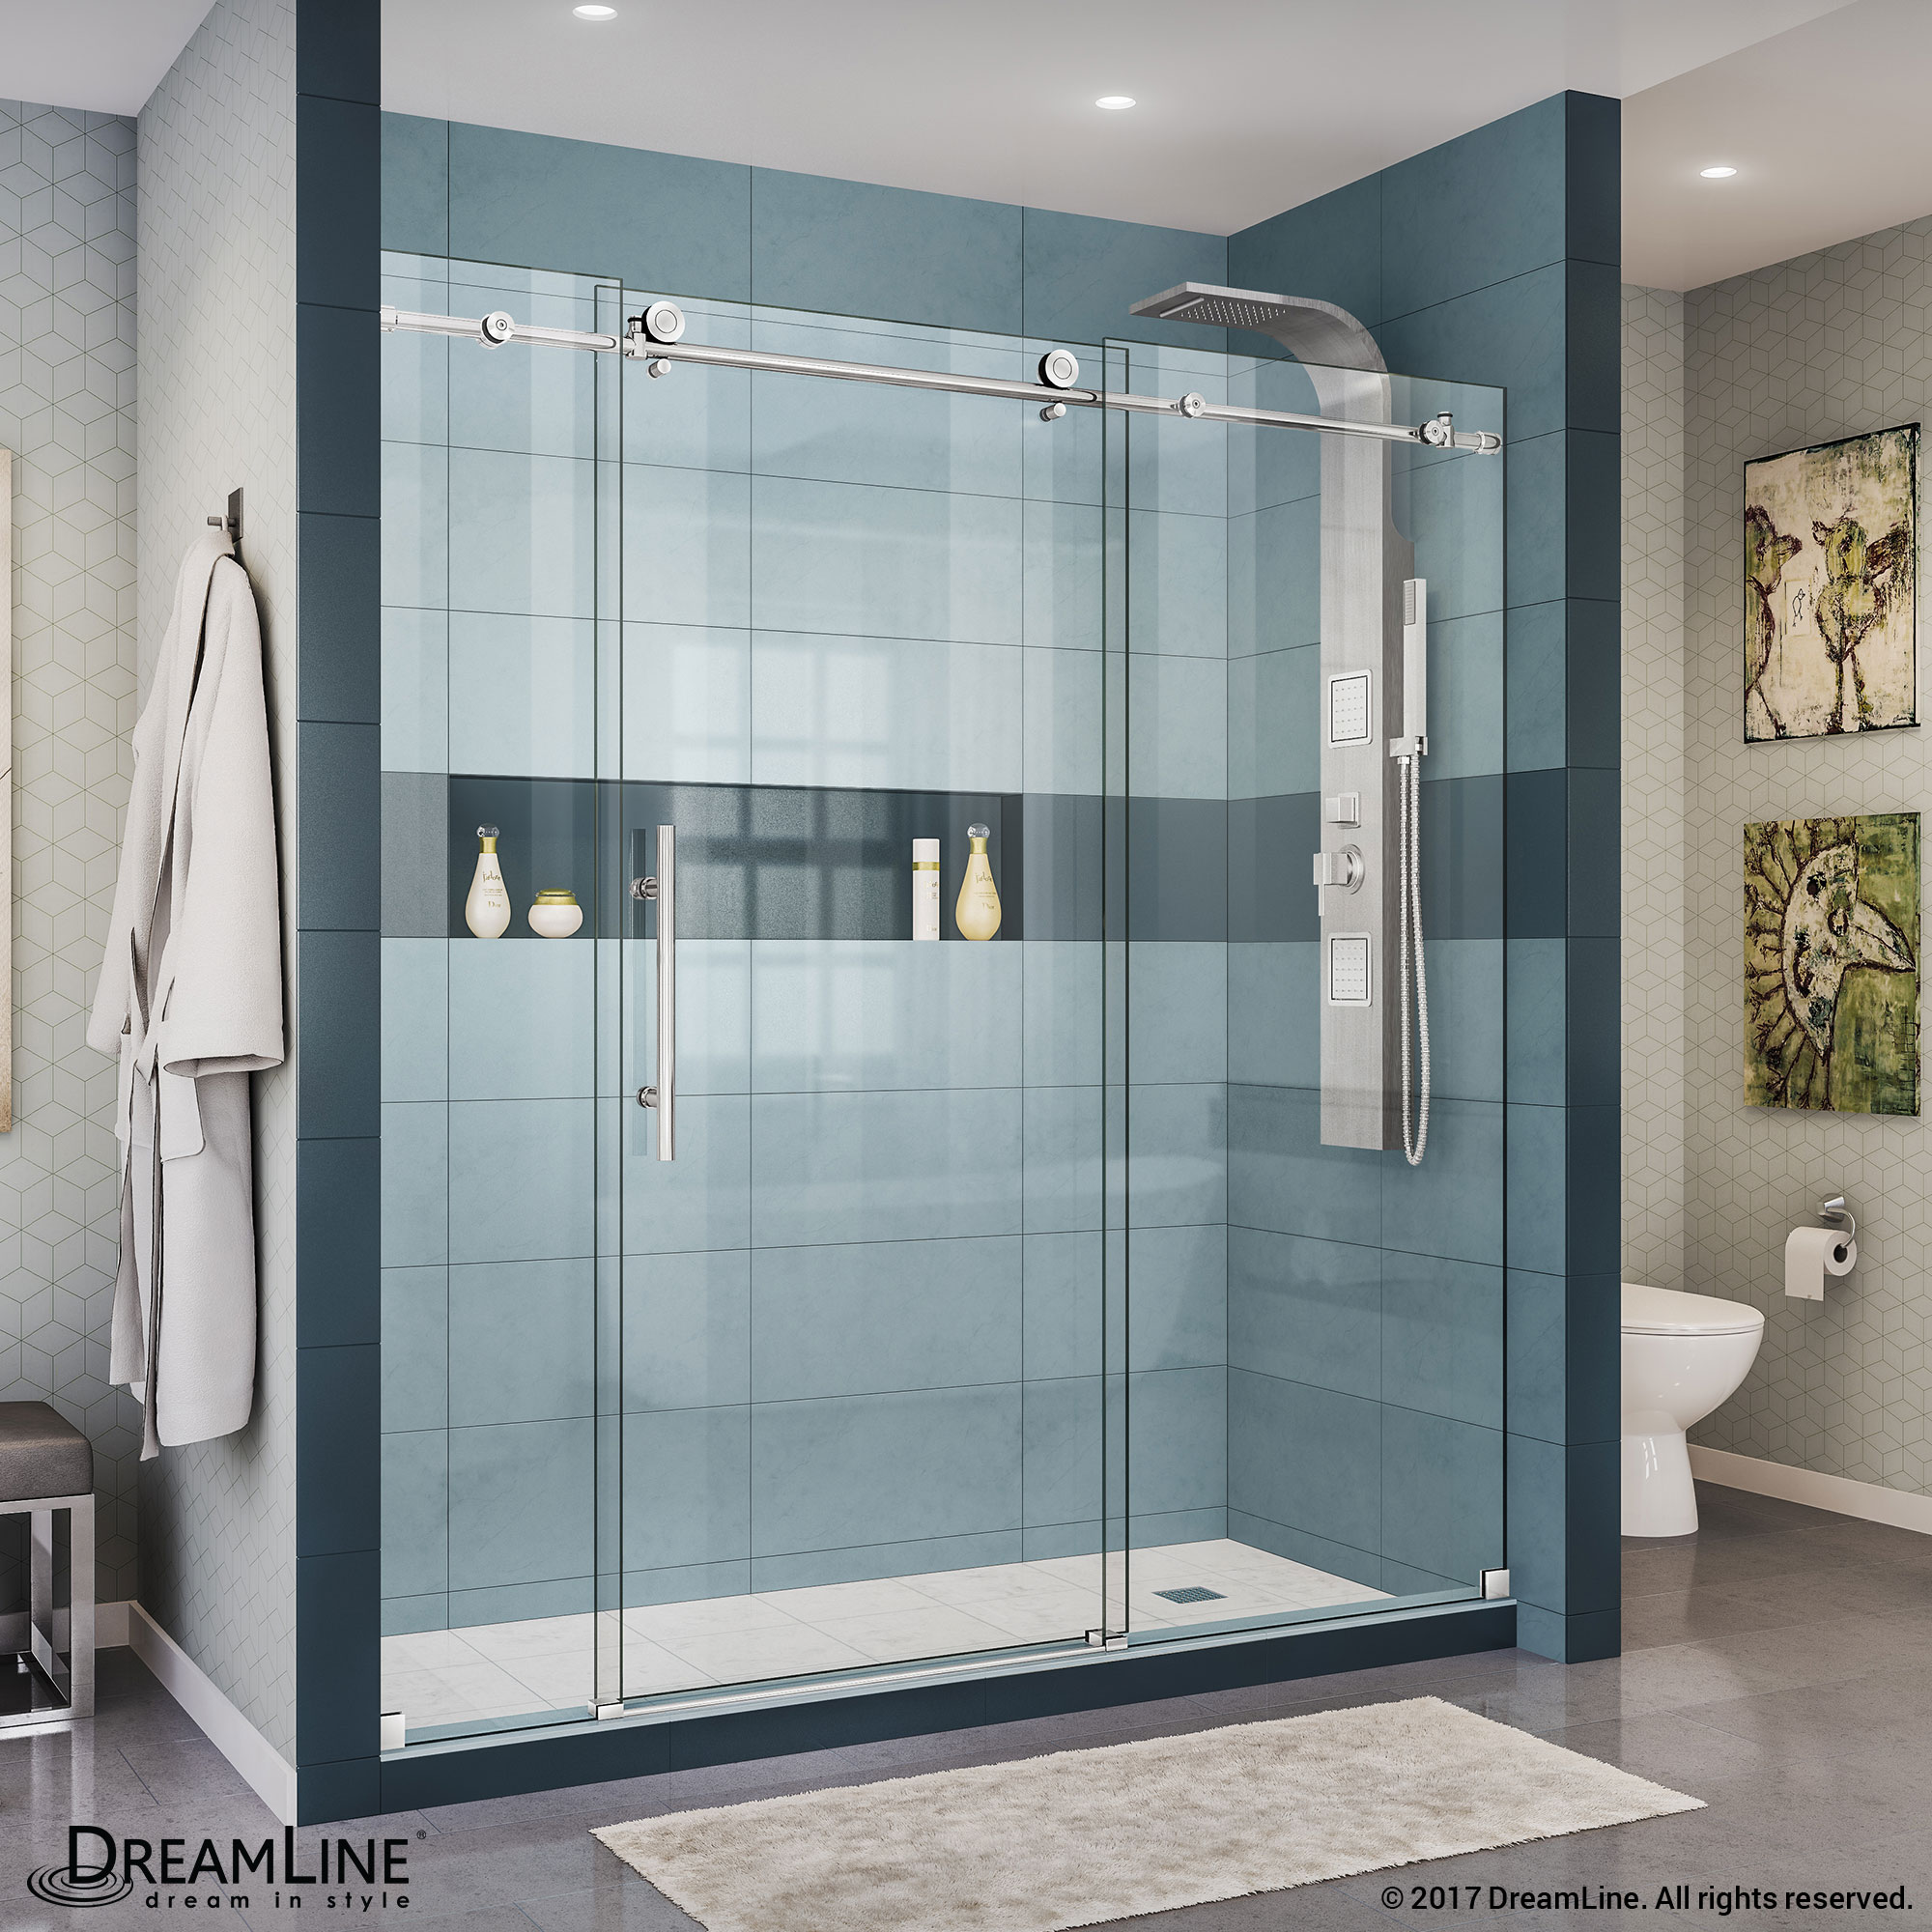 "Enigma-X 56 to 60"" Fully Frameless Sliding Shower Door, Clear 3/8"" Glass Door, Brushed Stainless Steel Finish"